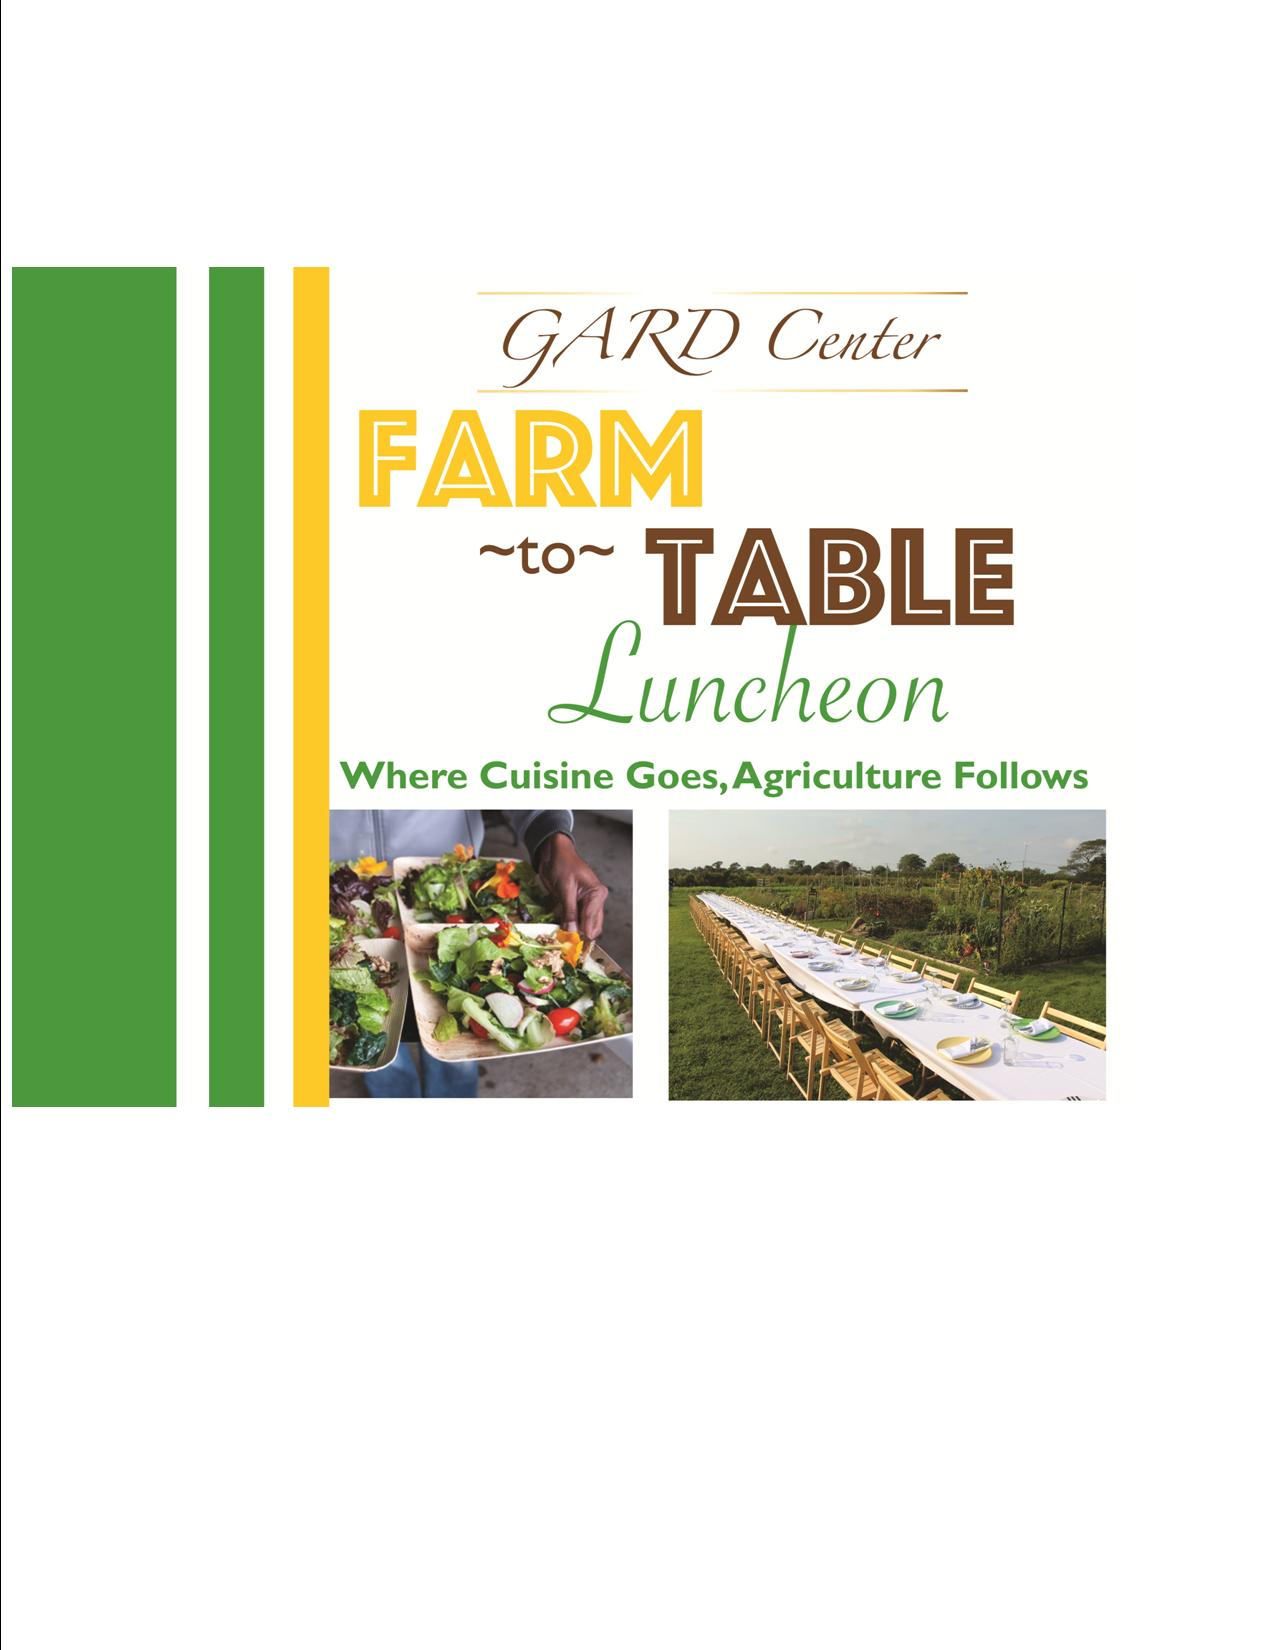 Farm to Table - Taste the Difference